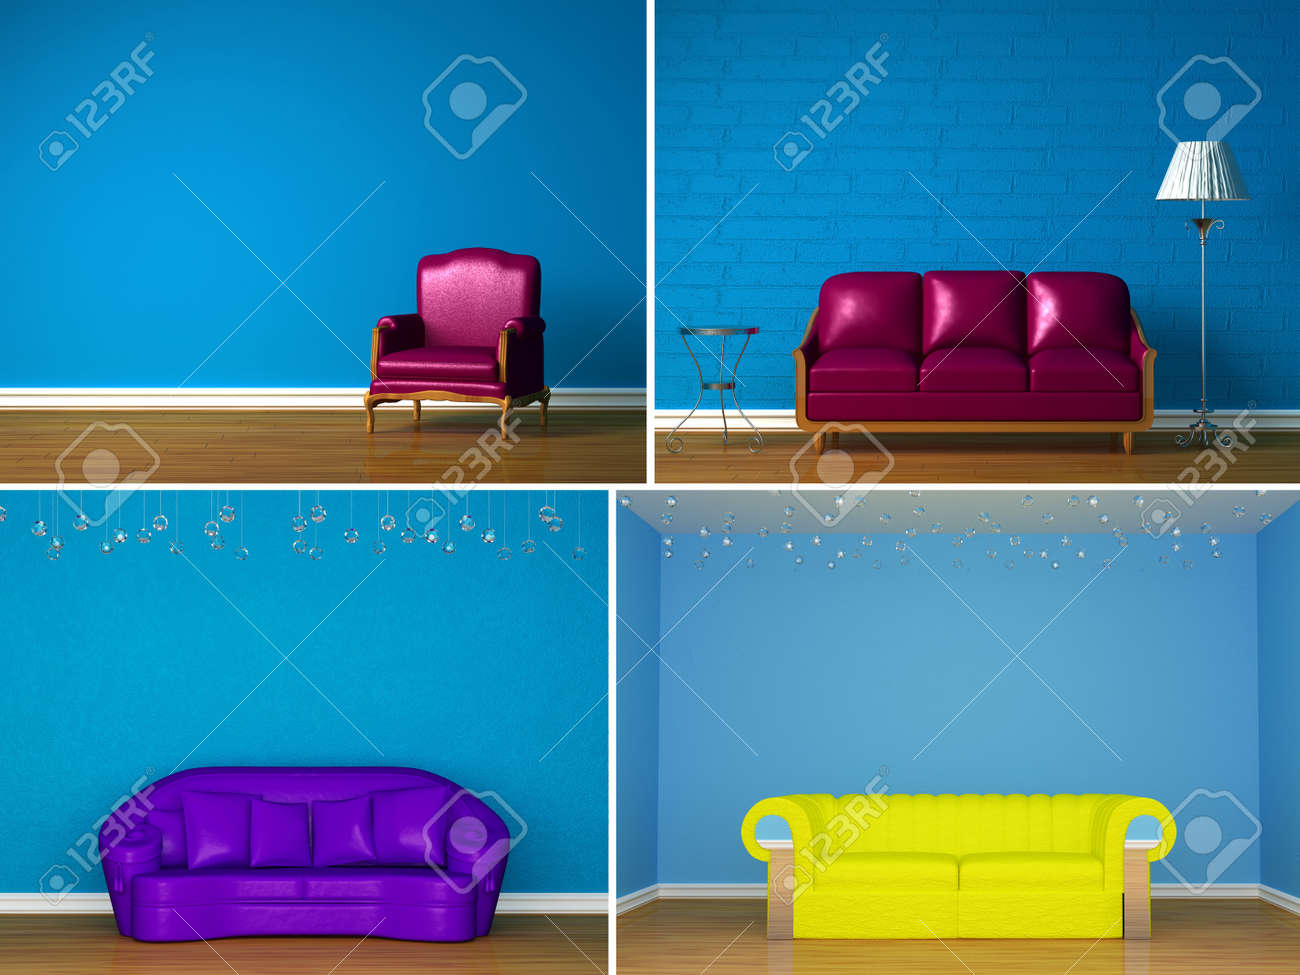 set of images of beautiful simple interiors stock photo, picture